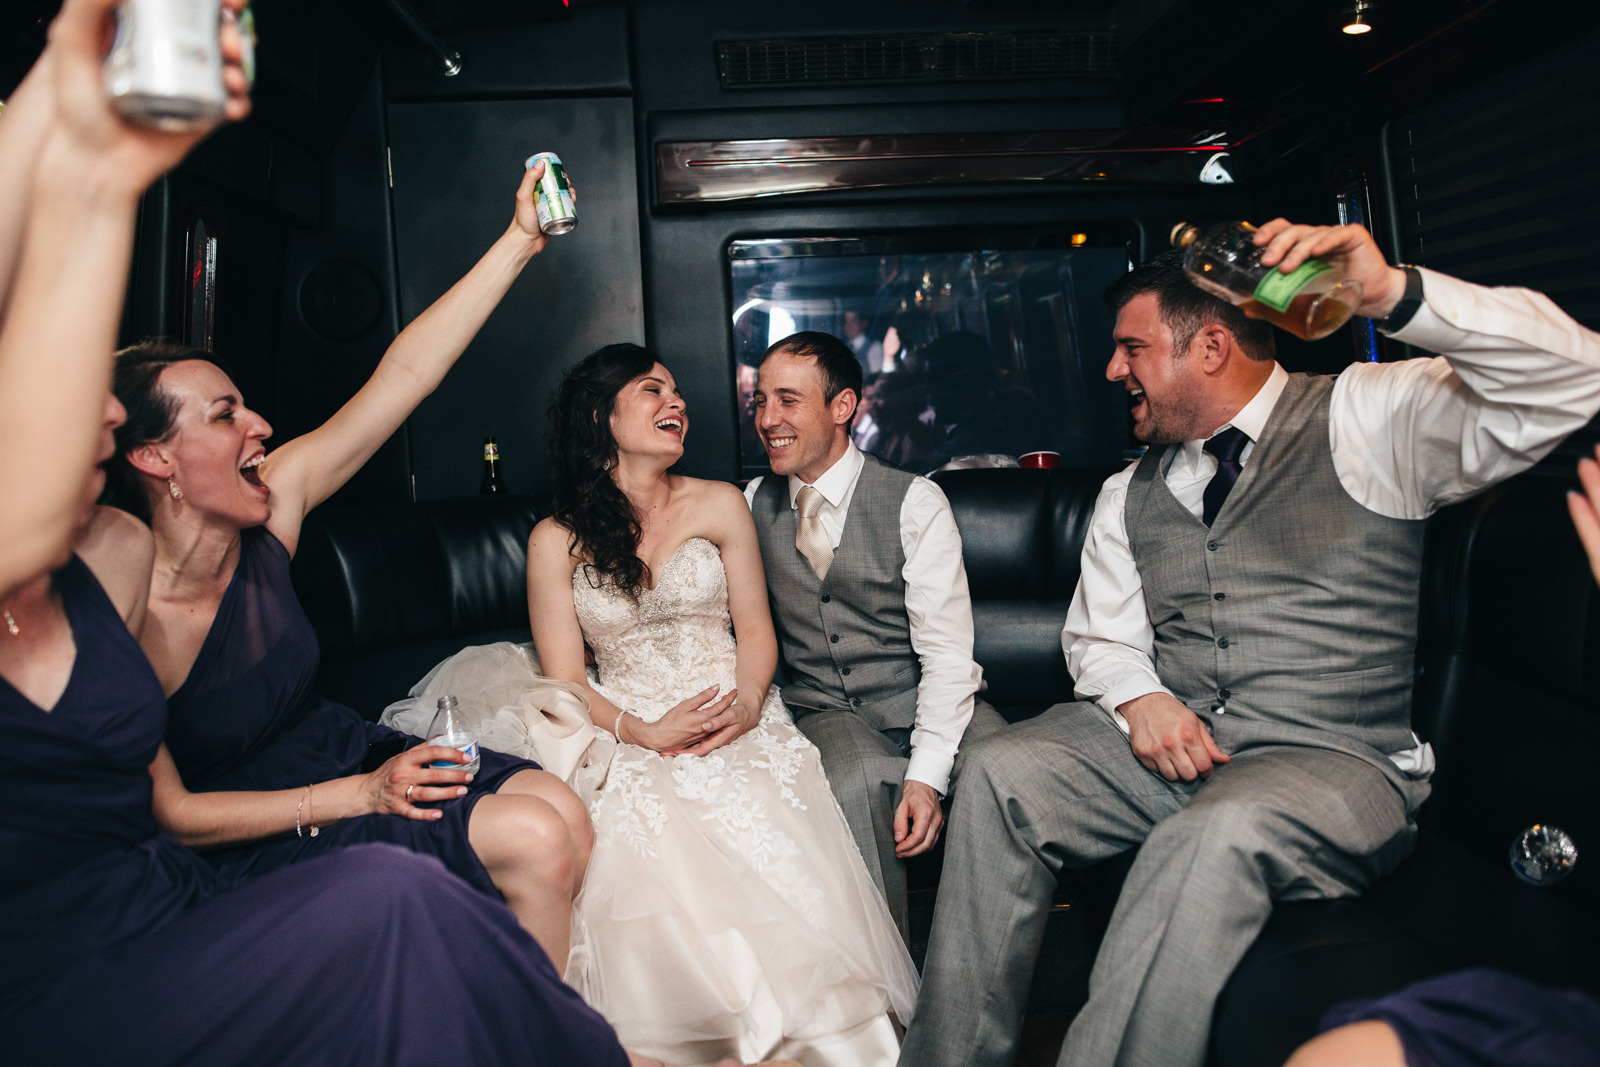 Bridal party celebrating on party bus with bride and groom.